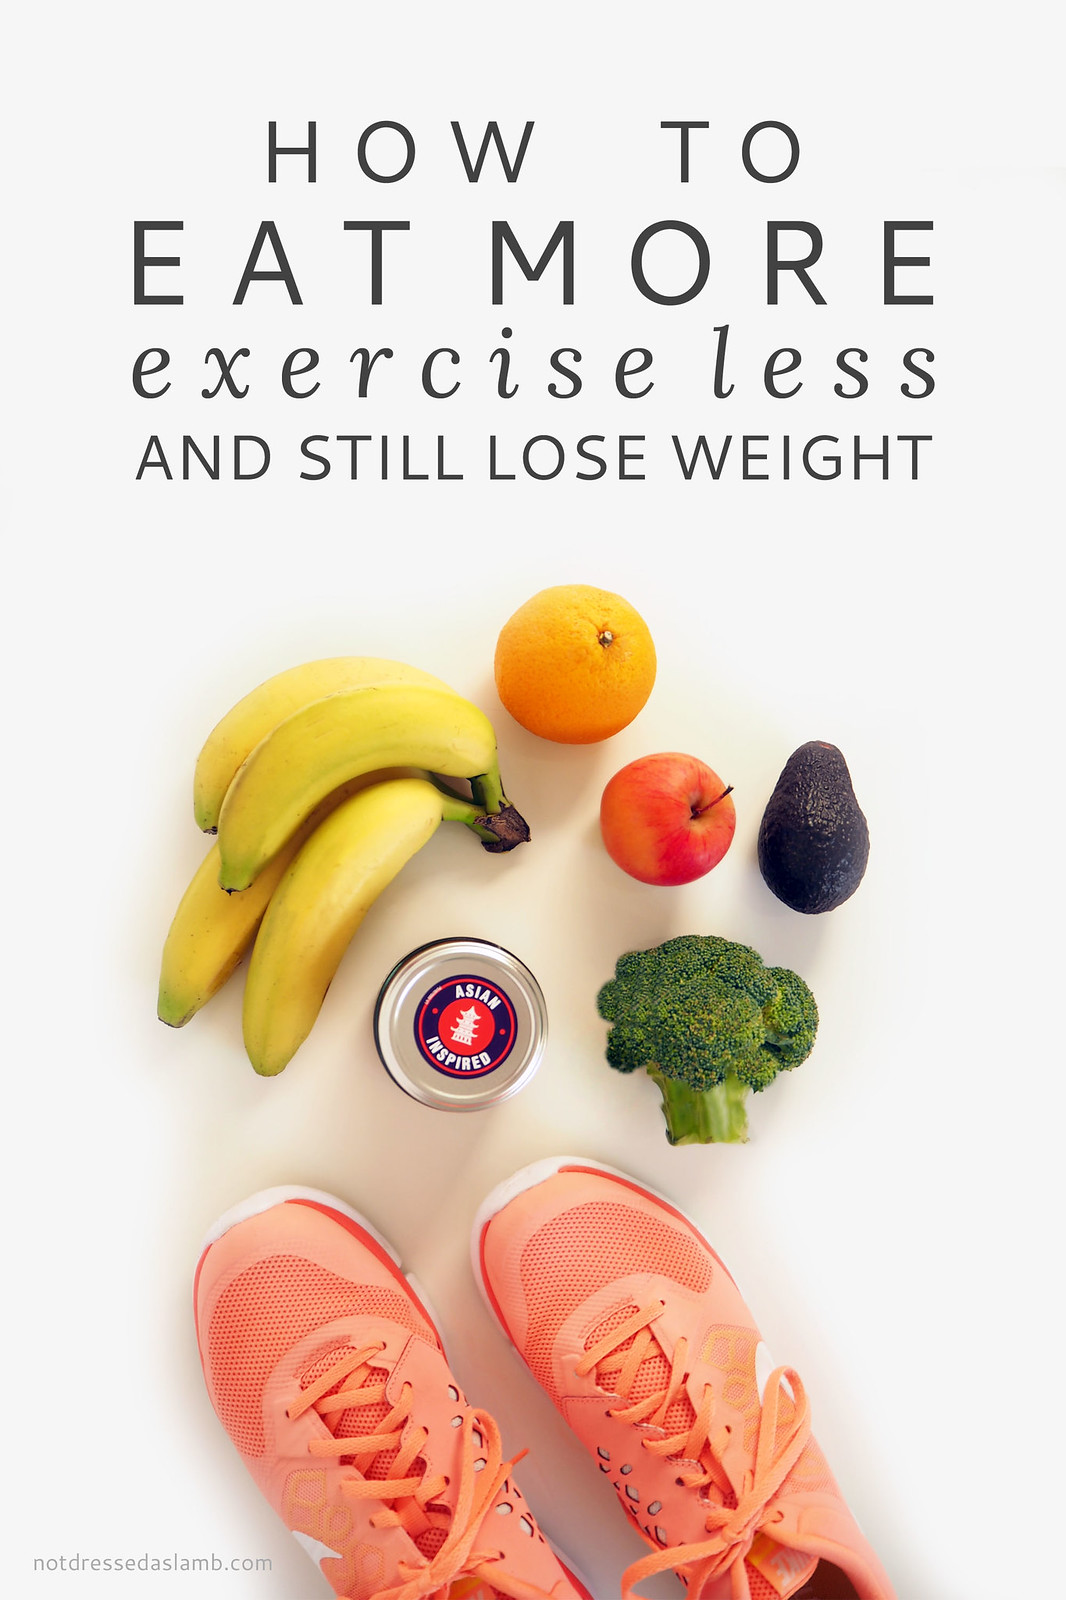 How to Eat More, Exercise Less and Still Lose Weight | Not Dressed As Lamb health and fitness